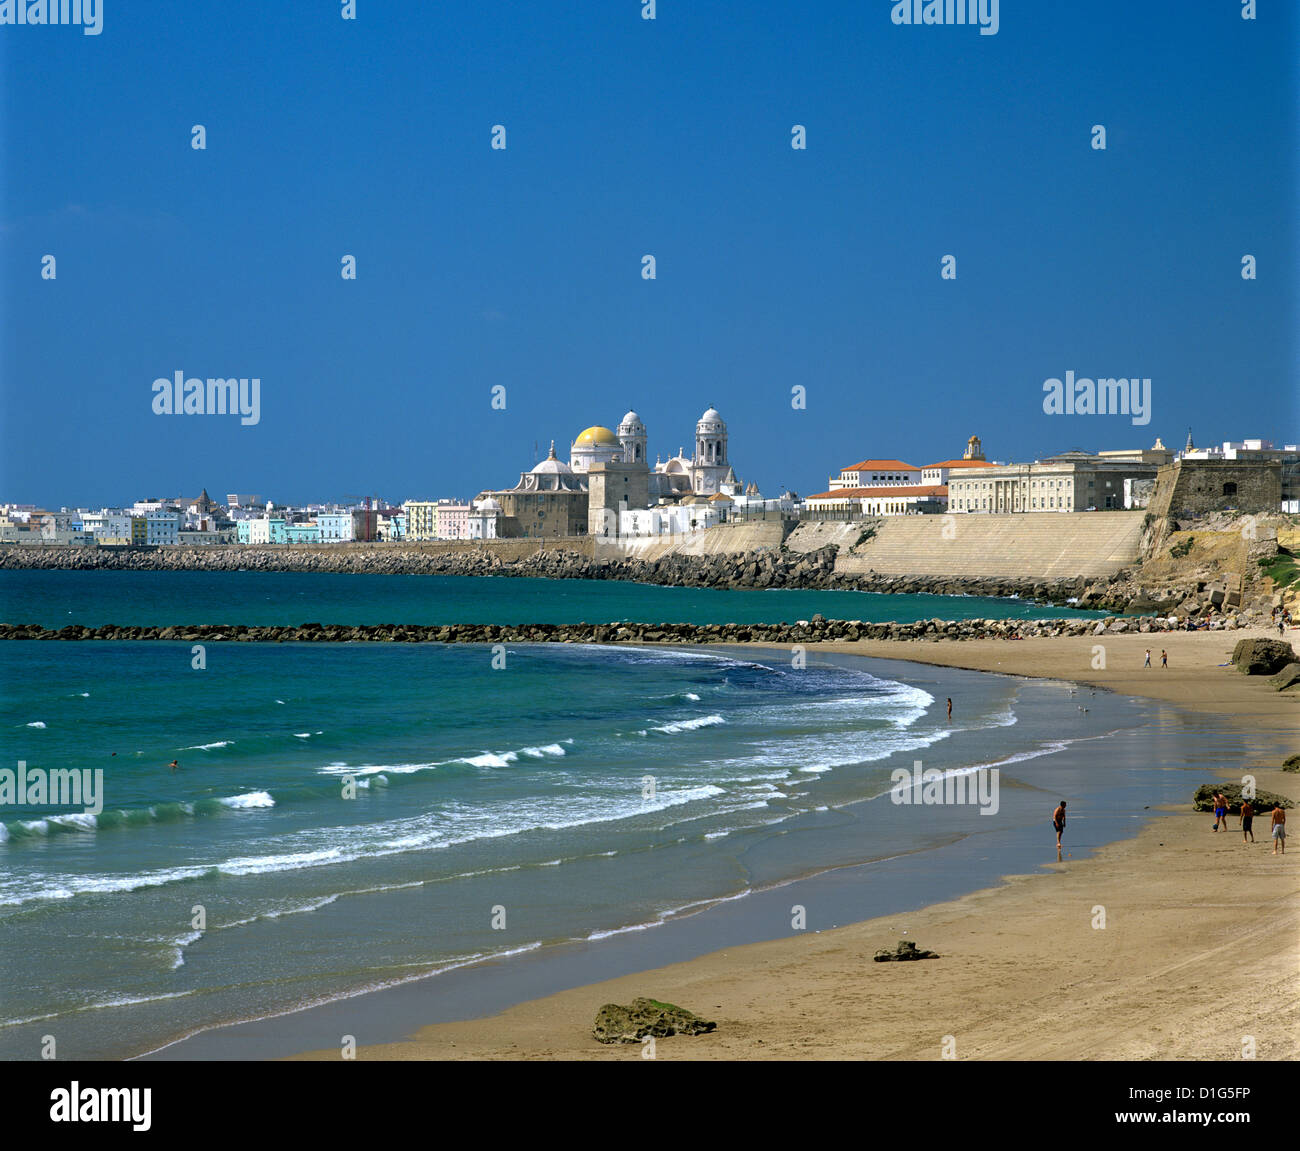 View along beach towards old town, Cadiz, Andalucia, Spain, Europe - Stock Image